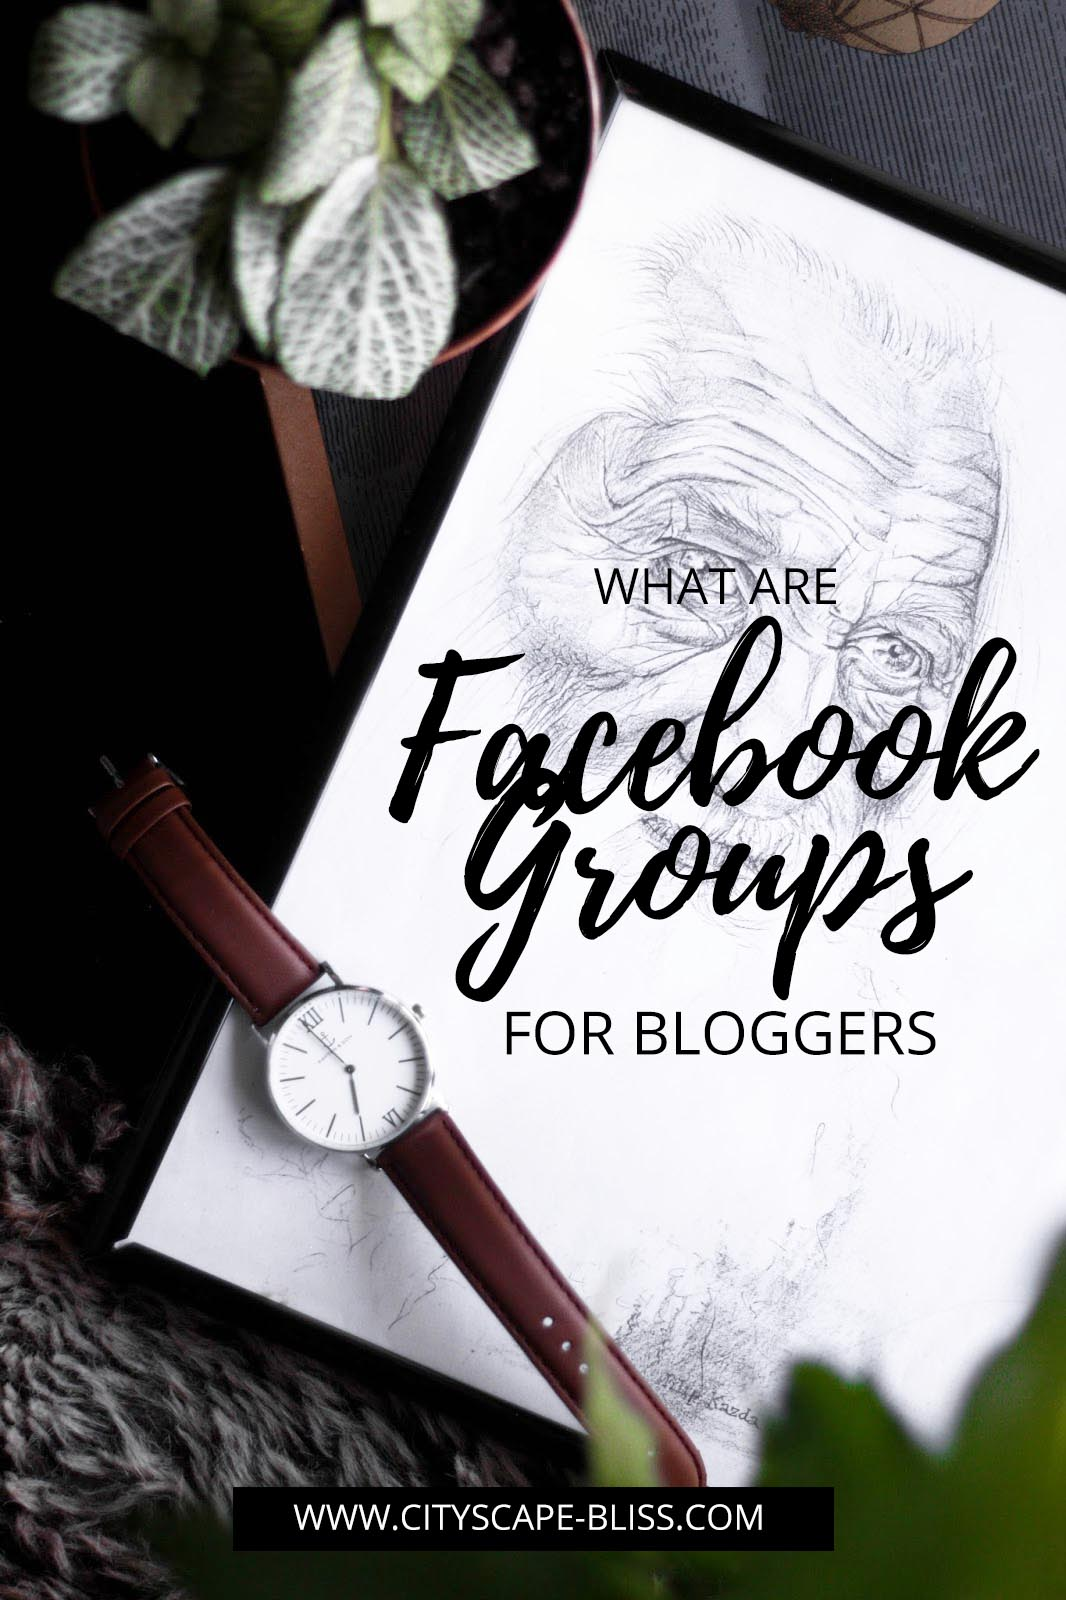 What are Facebook groups for bloggers & should I join one?